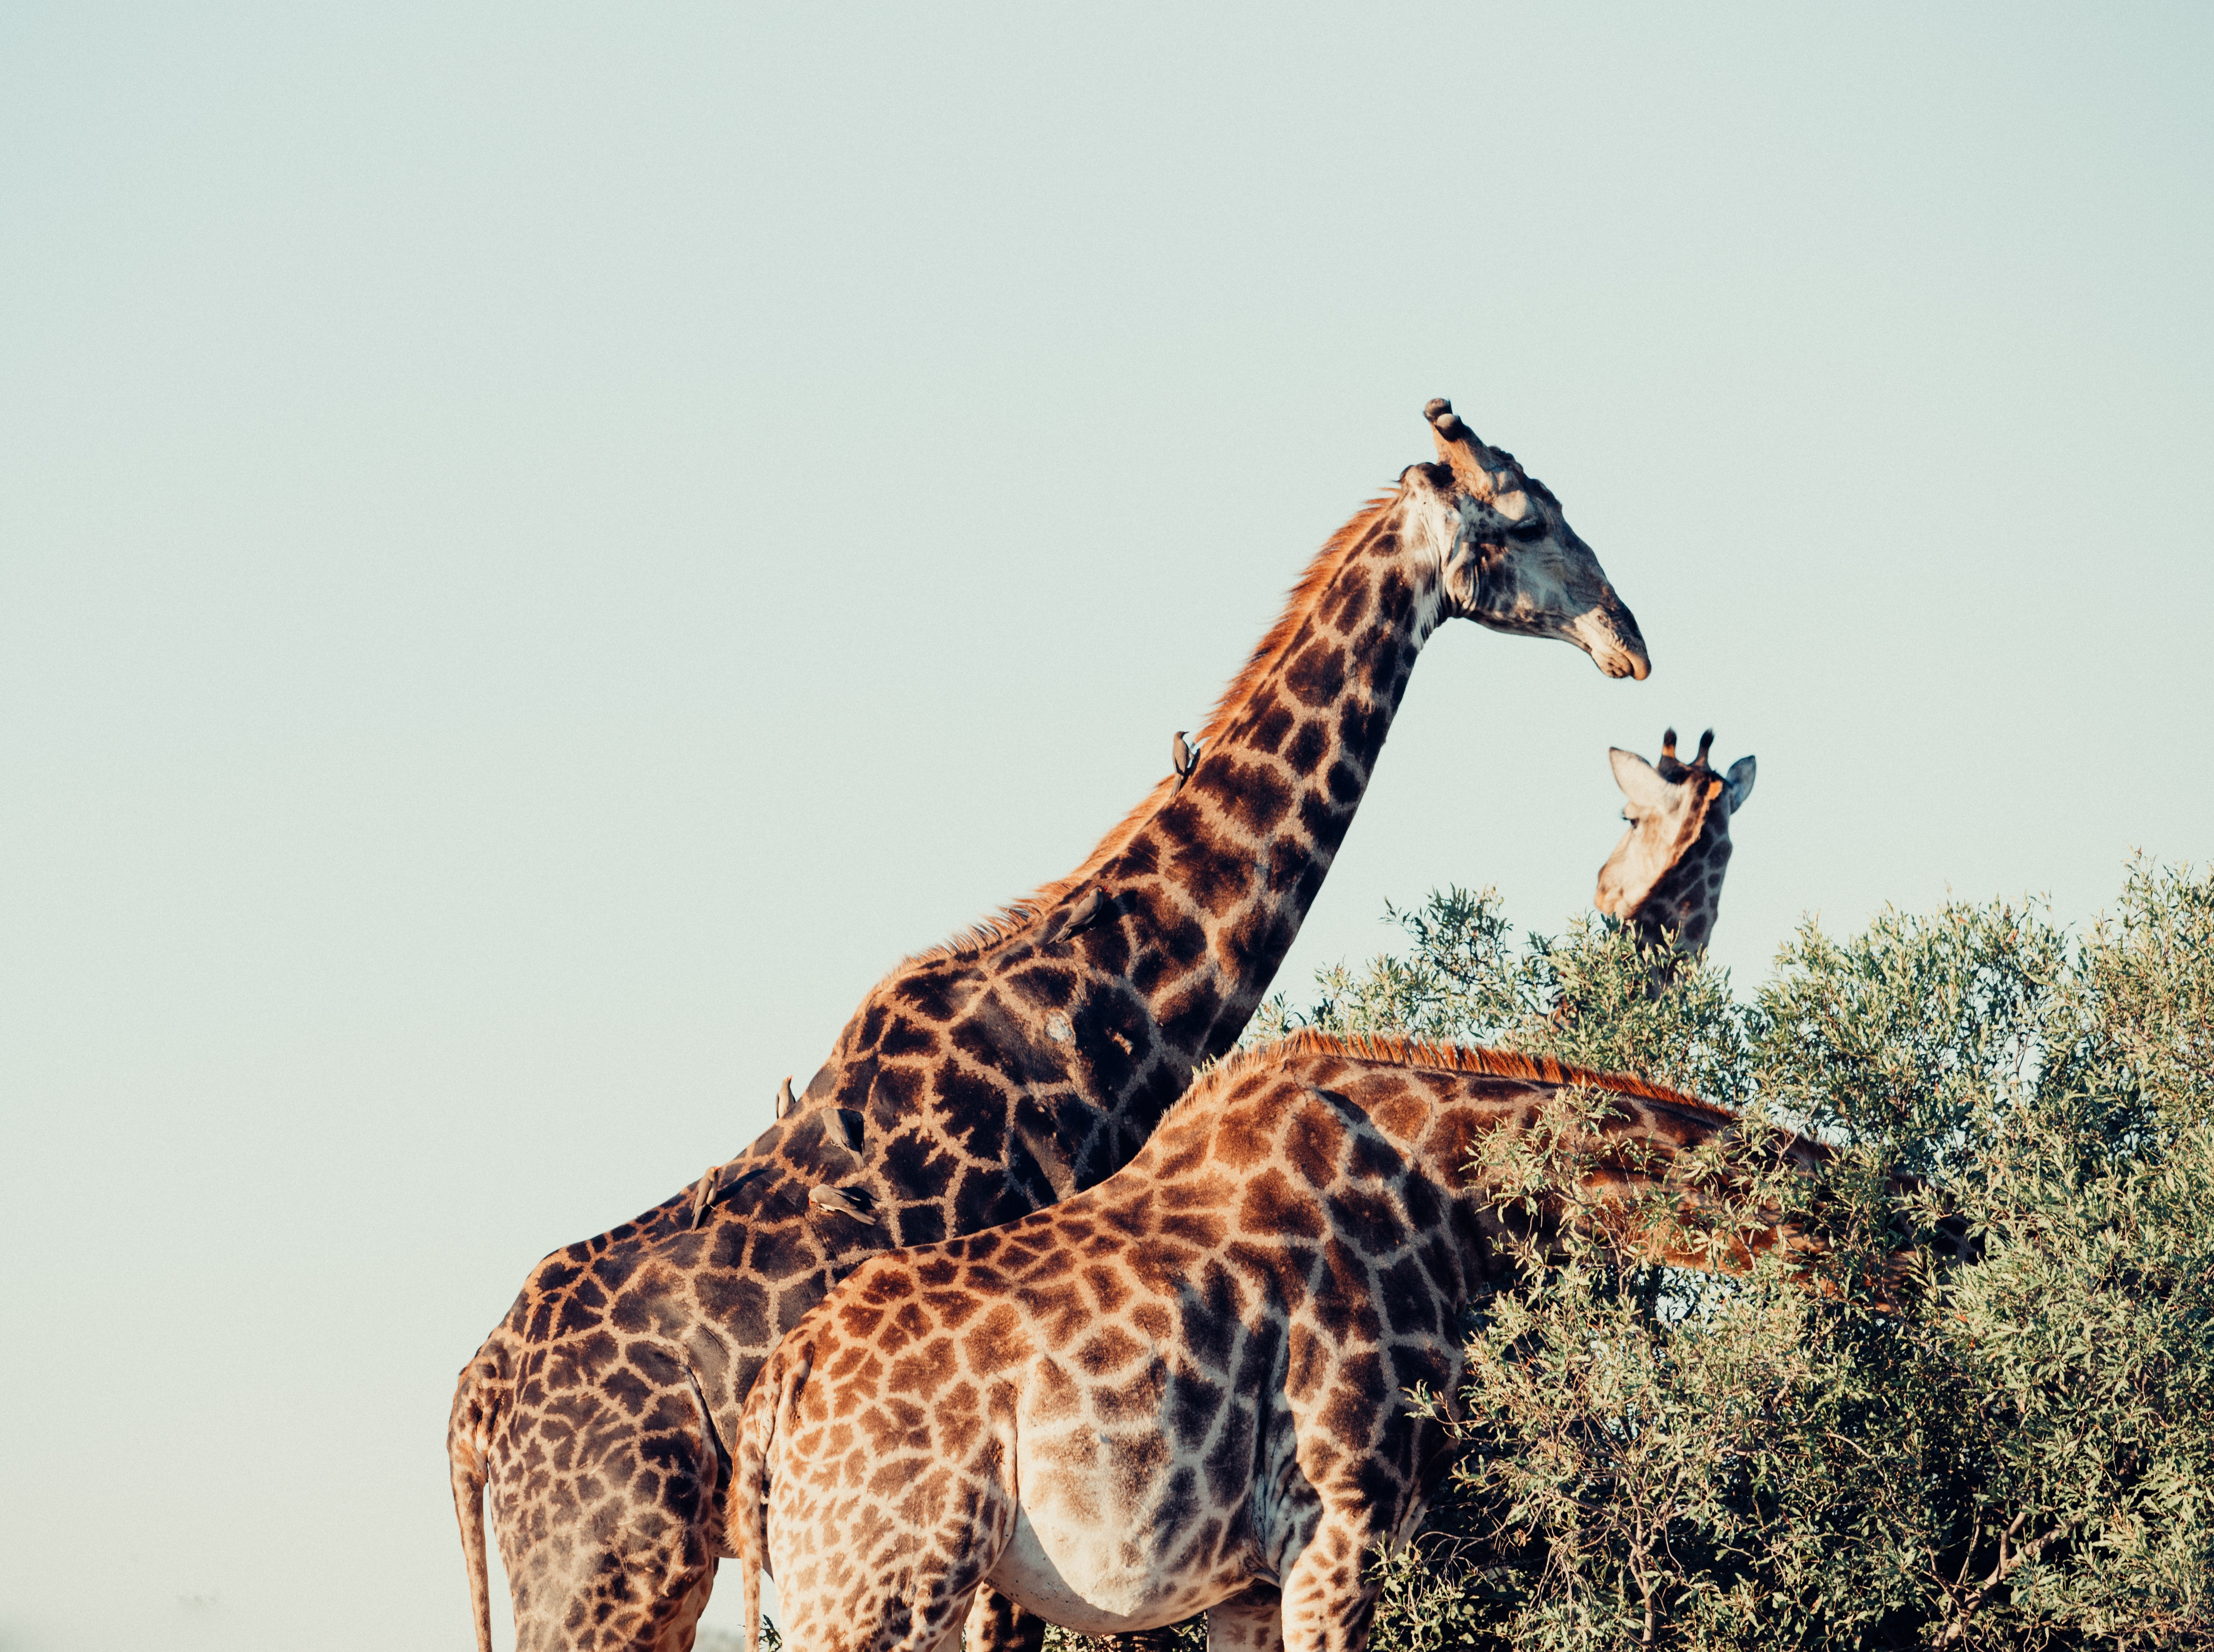 A family of giraffes browsing happily from tree top foliage